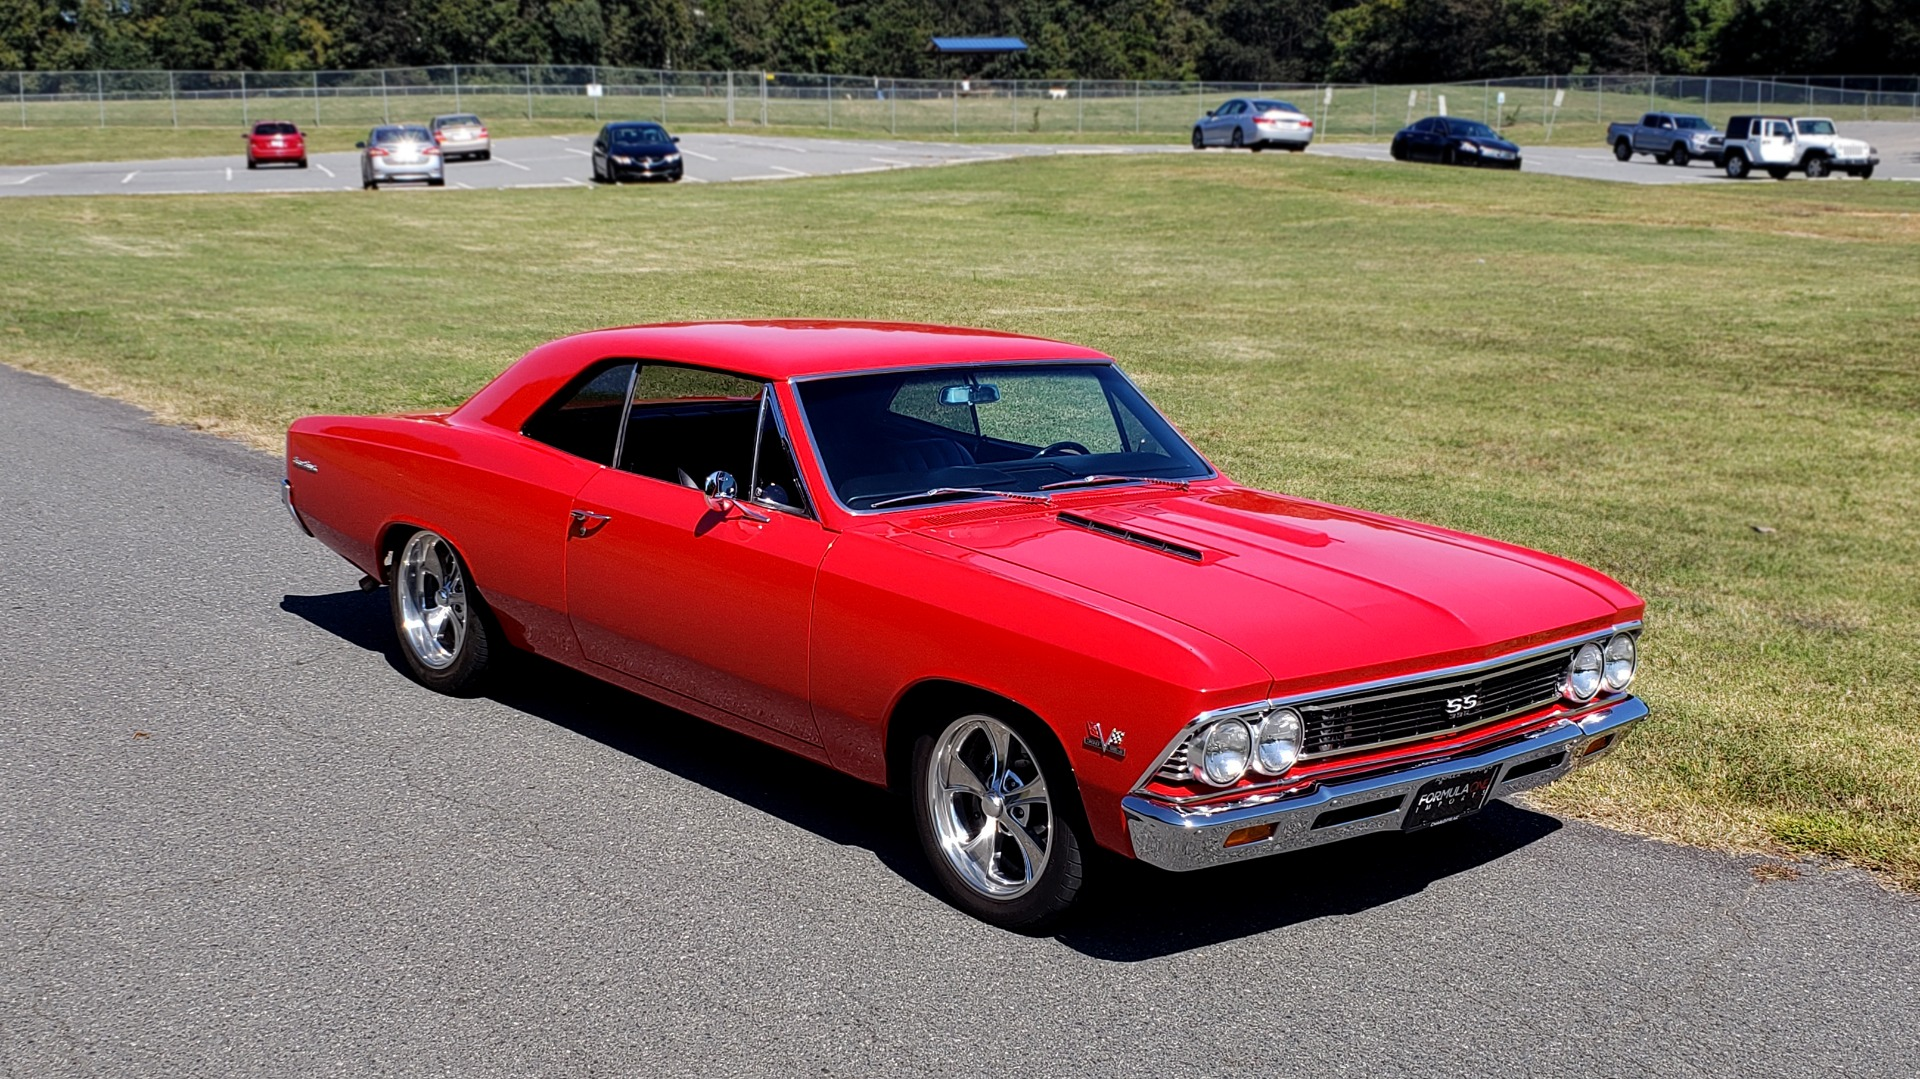 Used 1966 Chevrolet CHEVELLE SS 396 CUSTOM RESTO-MOD / 4-SPEED MANUAL / 12-BOLT REAR for sale $74,999 at Formula Imports in Charlotte NC 28227 9